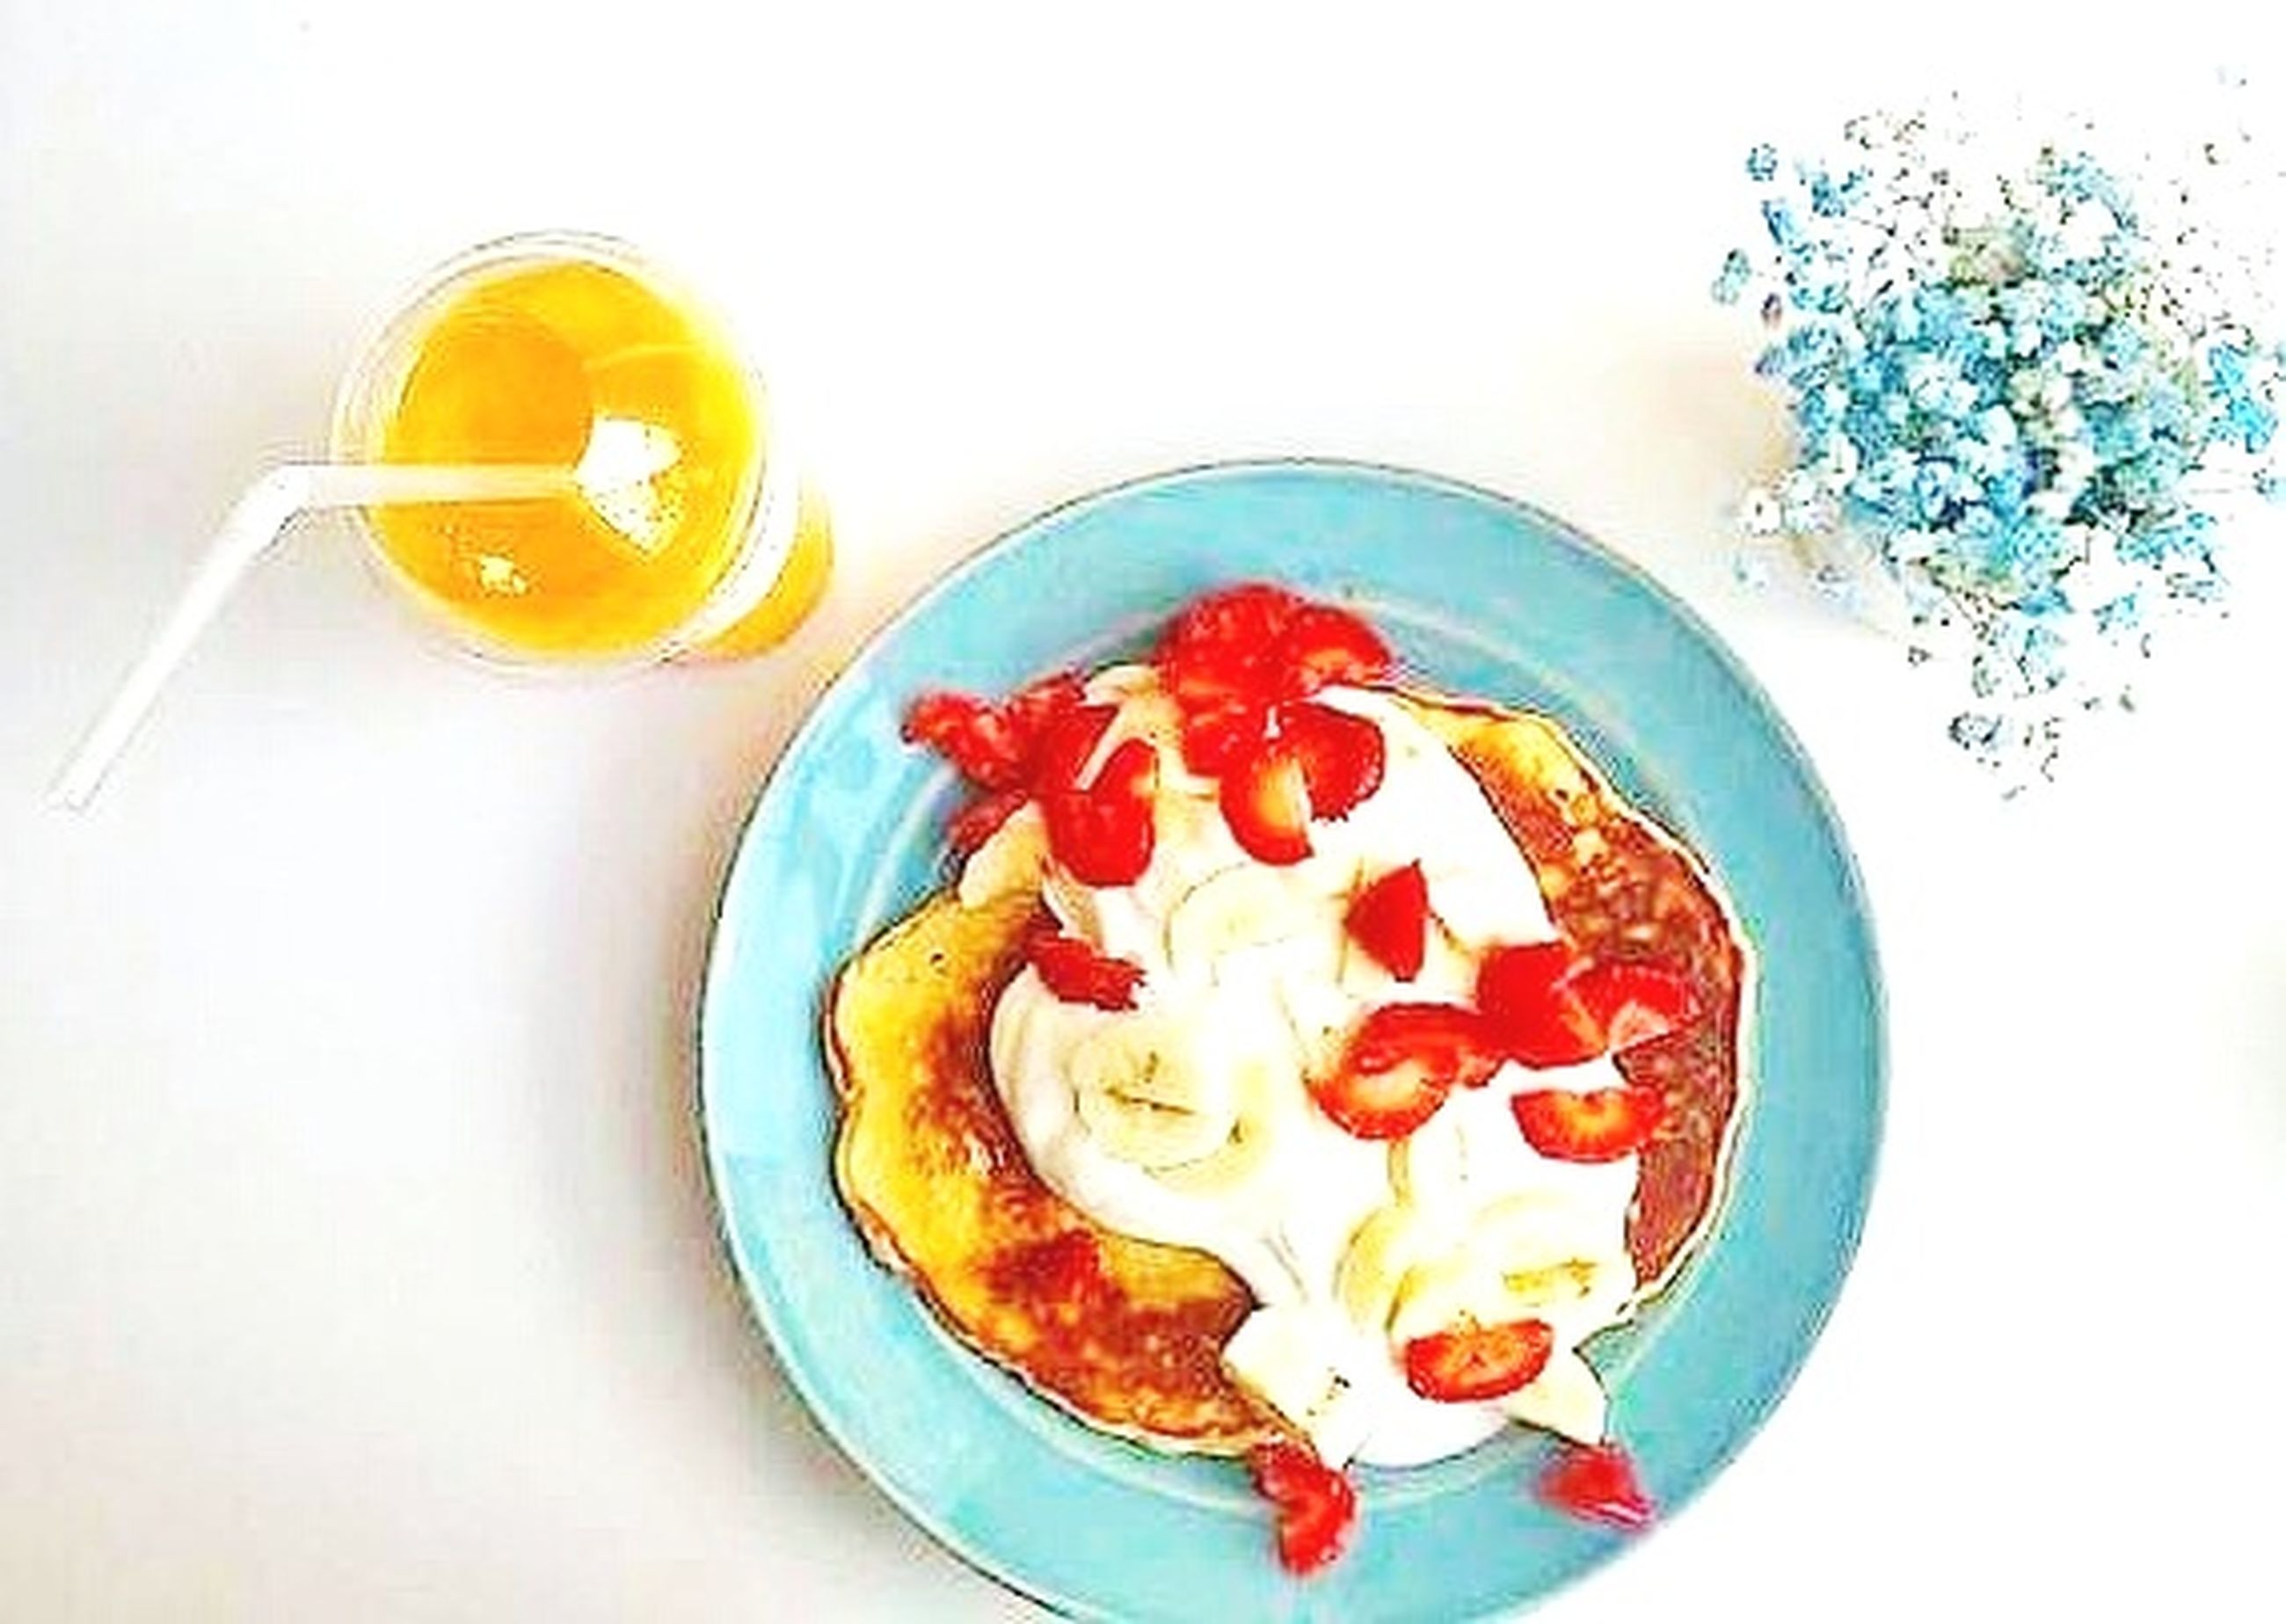 food, breakfast, food and drink, sweet food, freshness, directly above, fruit, no people, plate, healthy eating, white background, drink, orange juice, close-up, ready-to-eat, pancake, egg yolk, indoors, day